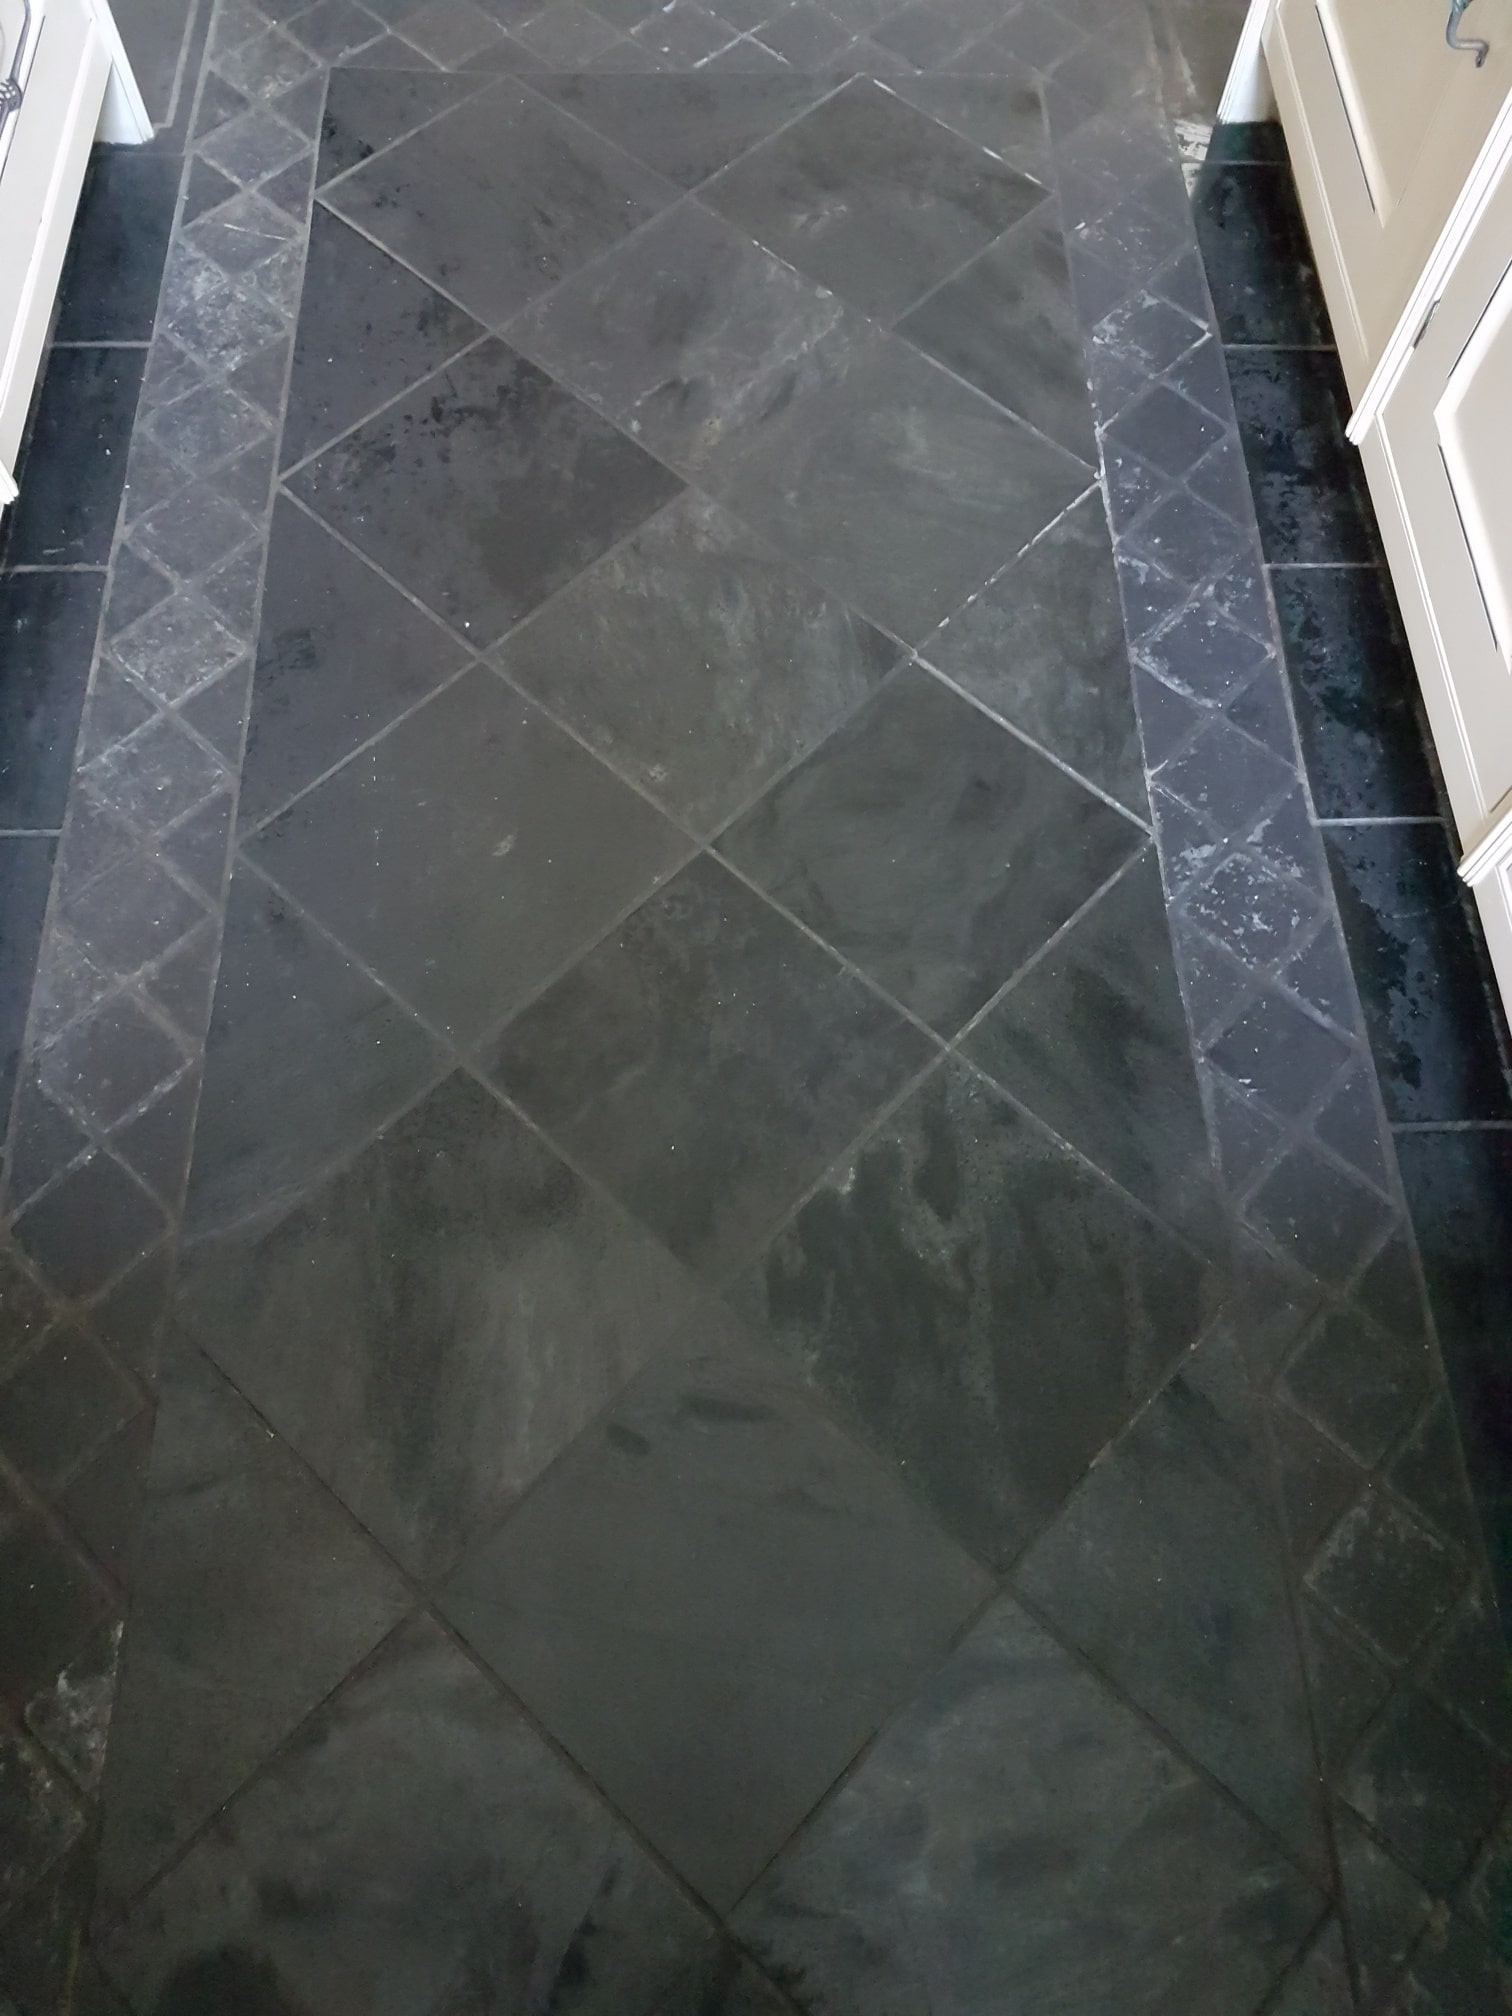 Slate and Granite Kitchen Floor Before Cleaning Harrogate